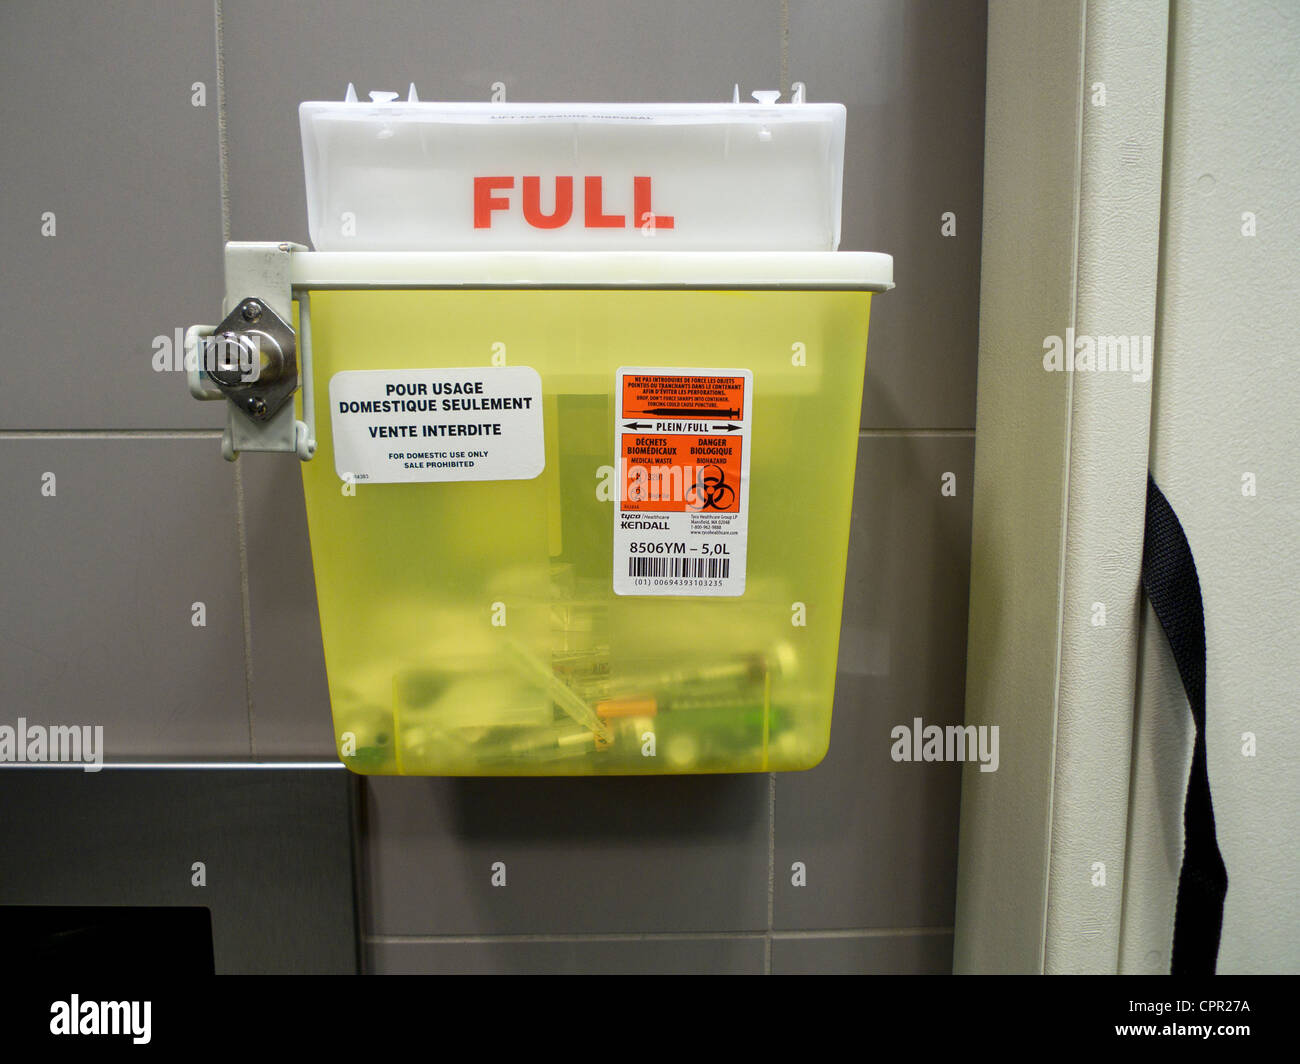 Disposal bin for diabetic hypodermic needles airport washroom Montreal Quebec Canada - Stock Image